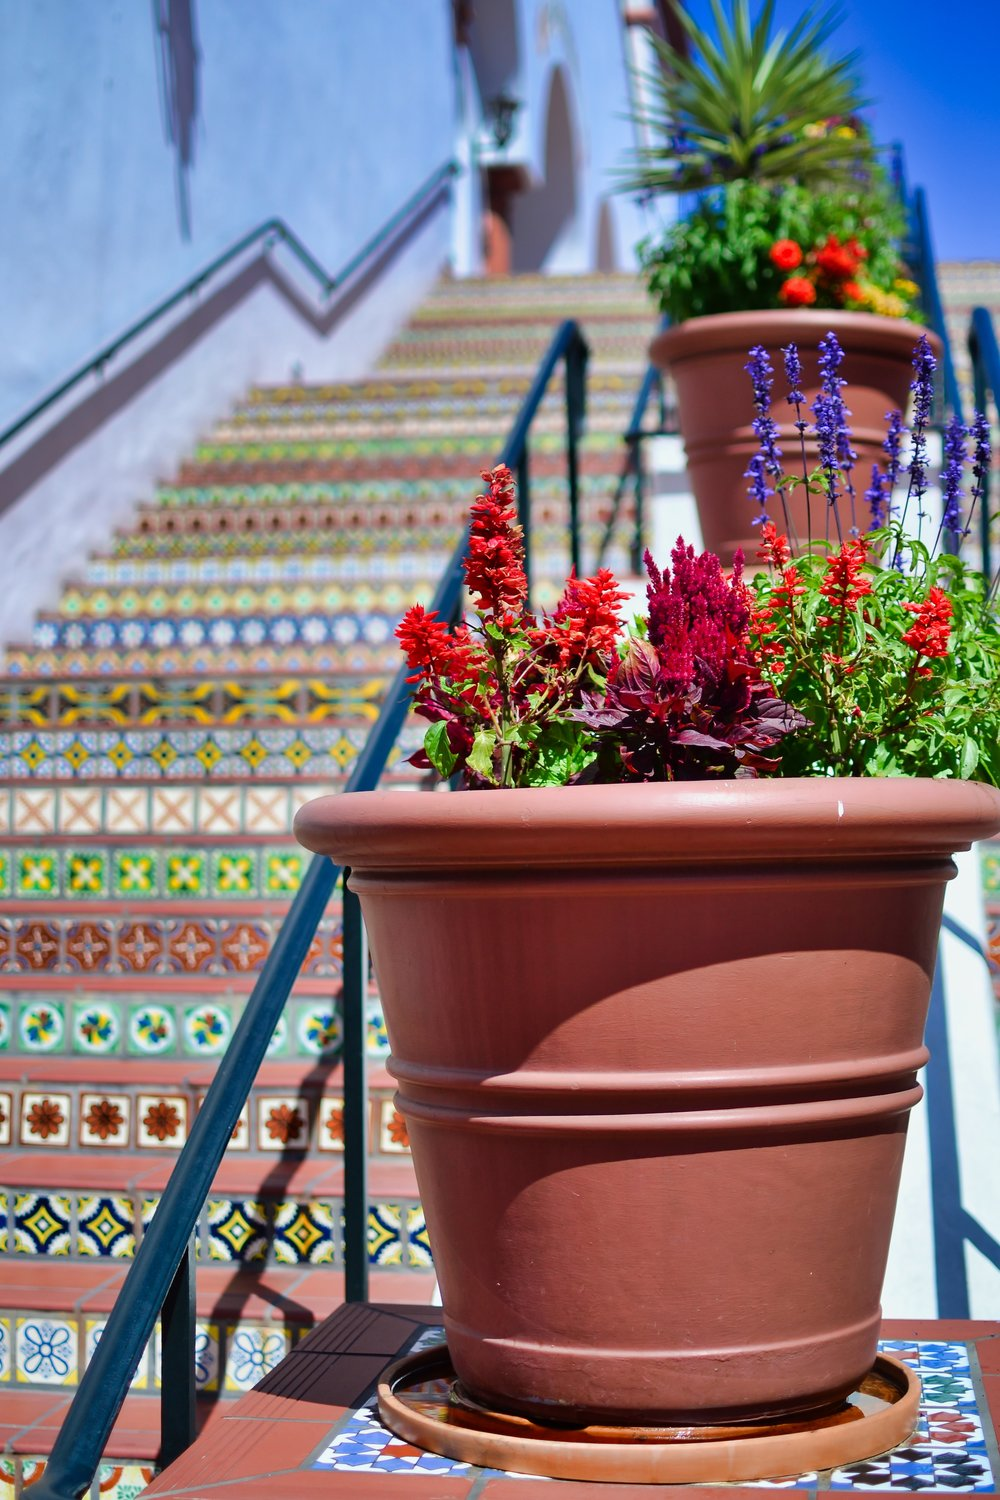 Best Spot for Photos in Santa Barbara - Painted Tile Stairs